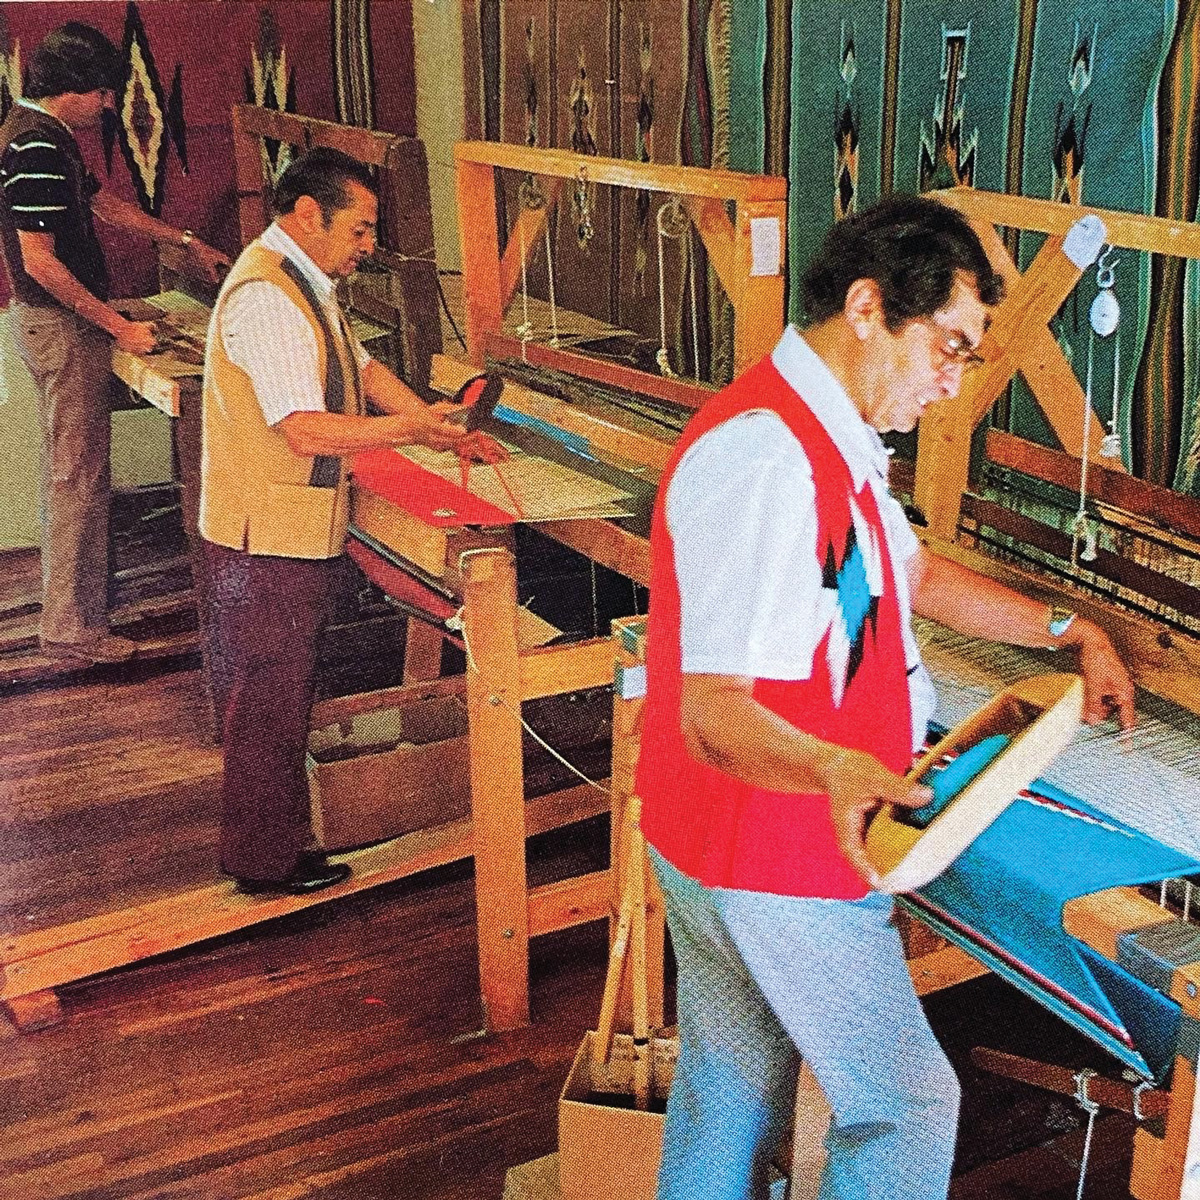 Men working looms in northern New Mexico